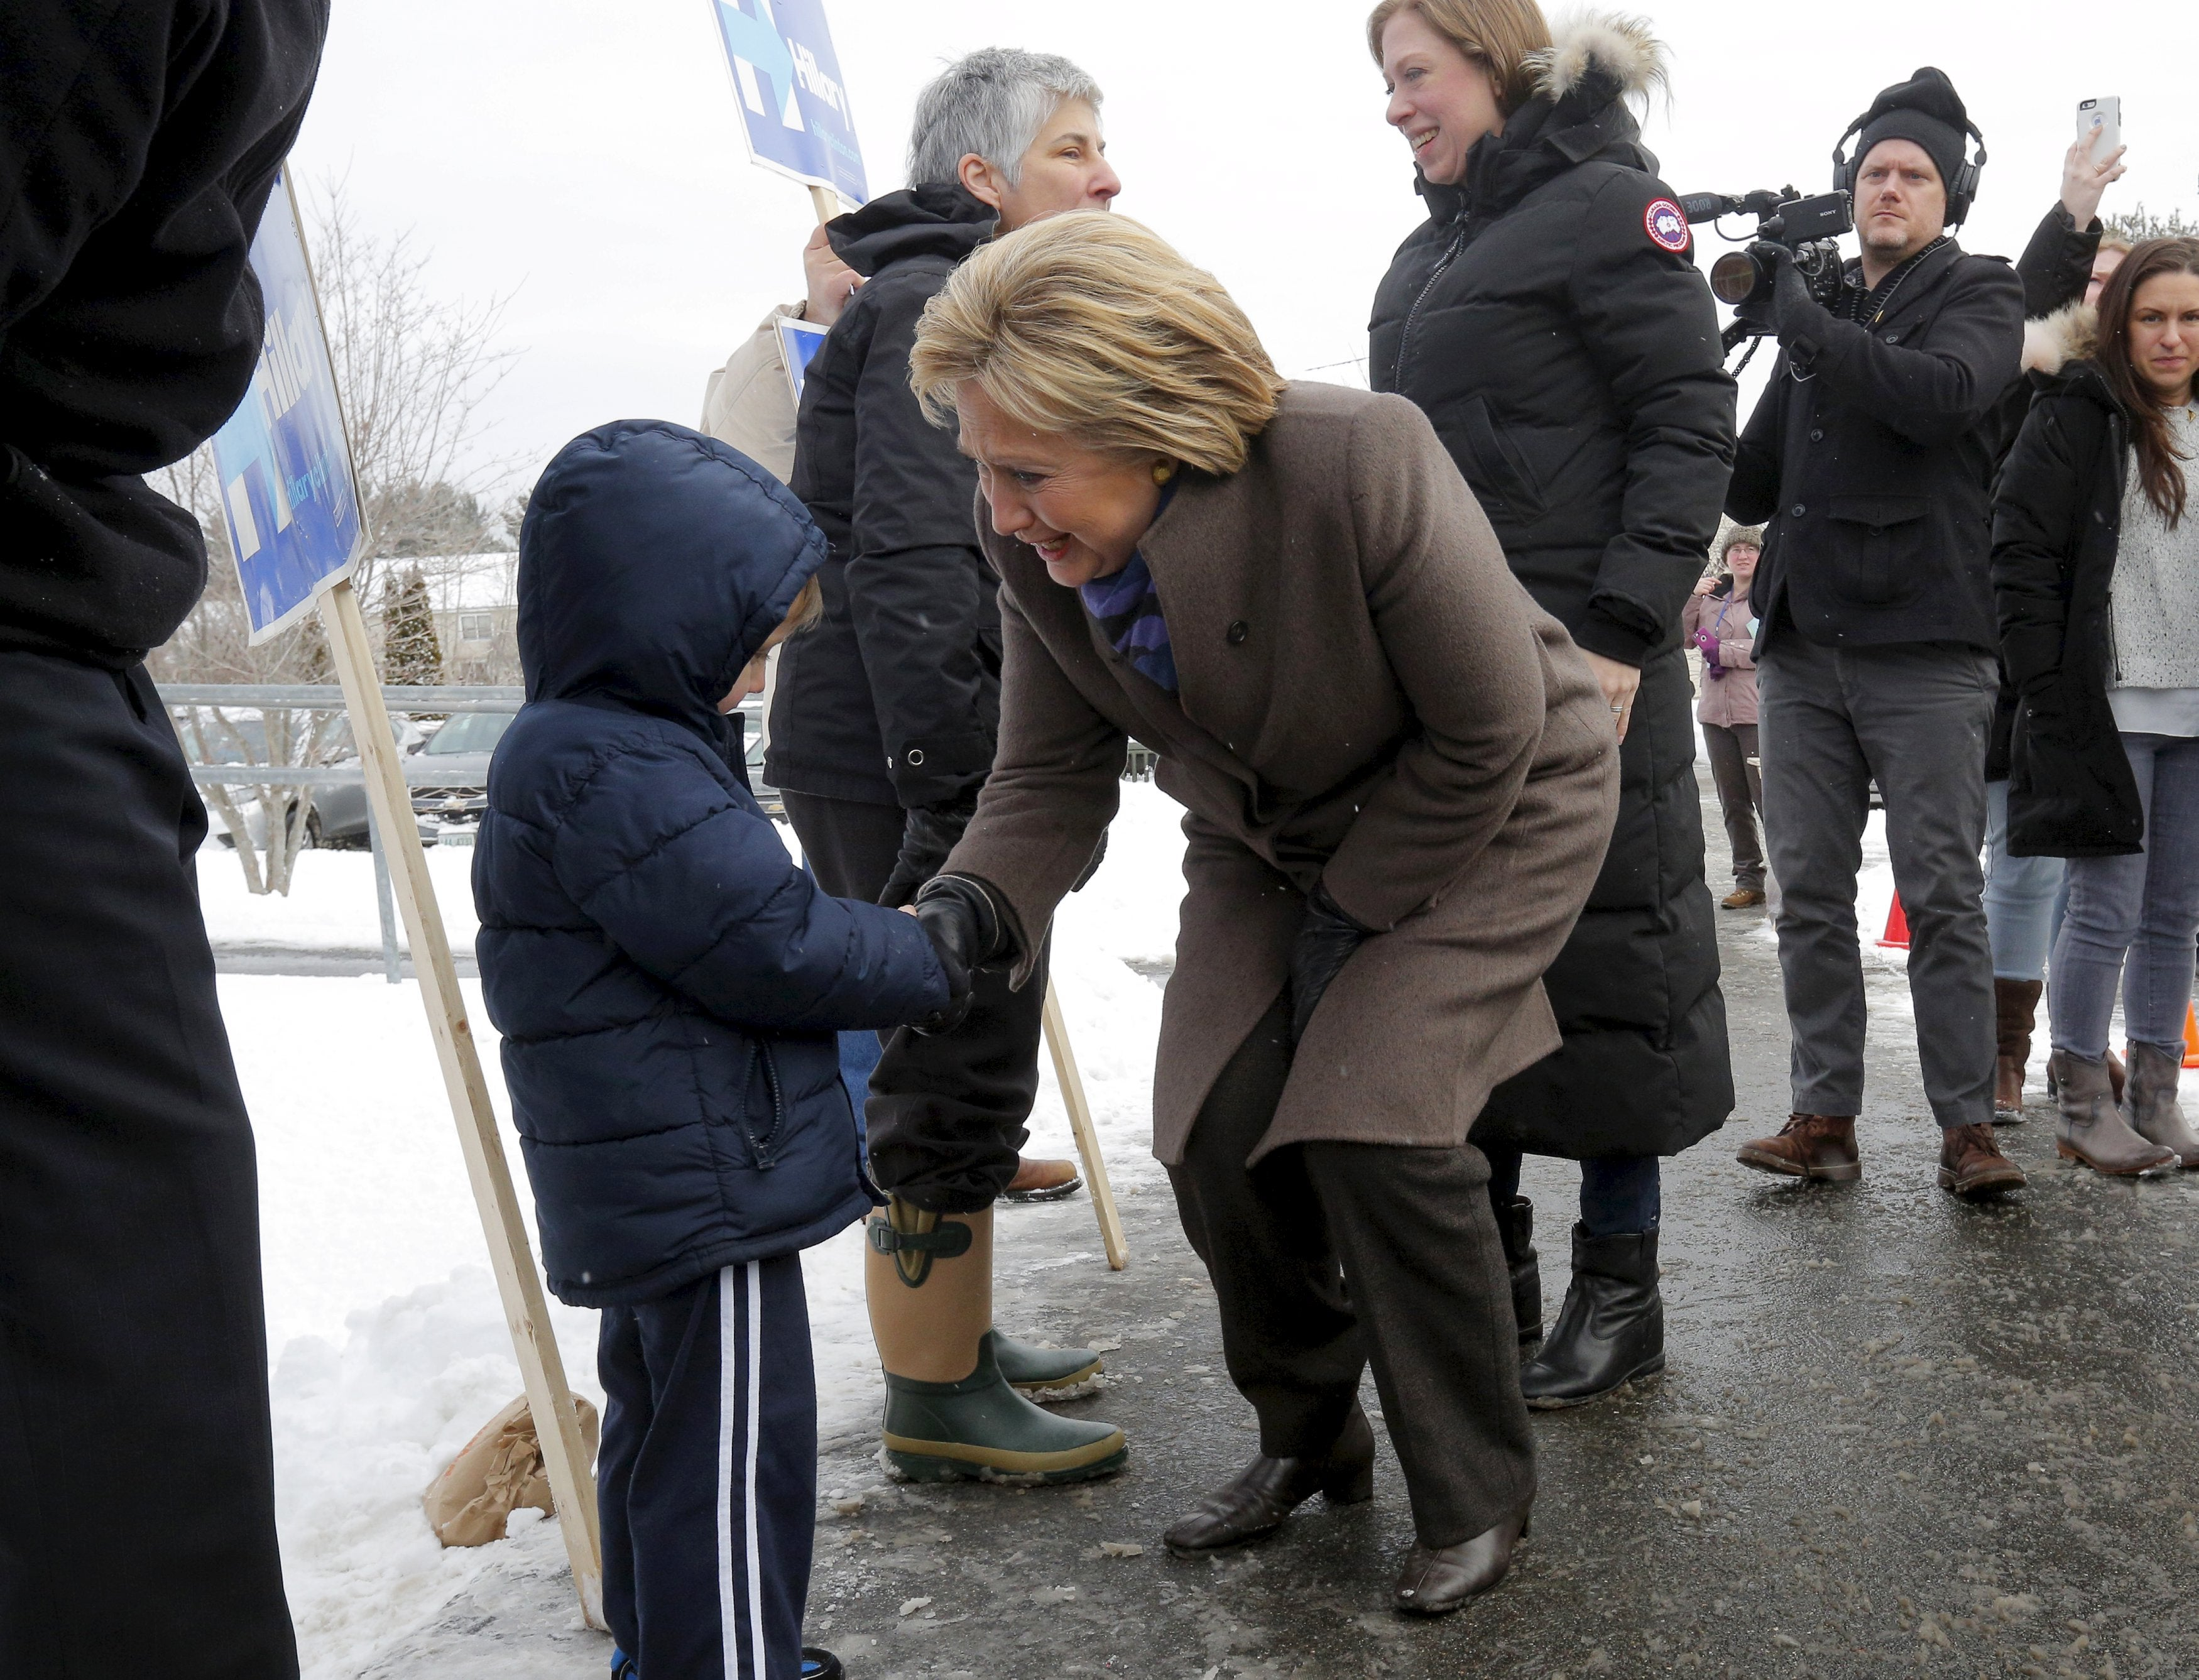 Clinton greets supporters outside a polling place in Derry, N.H.